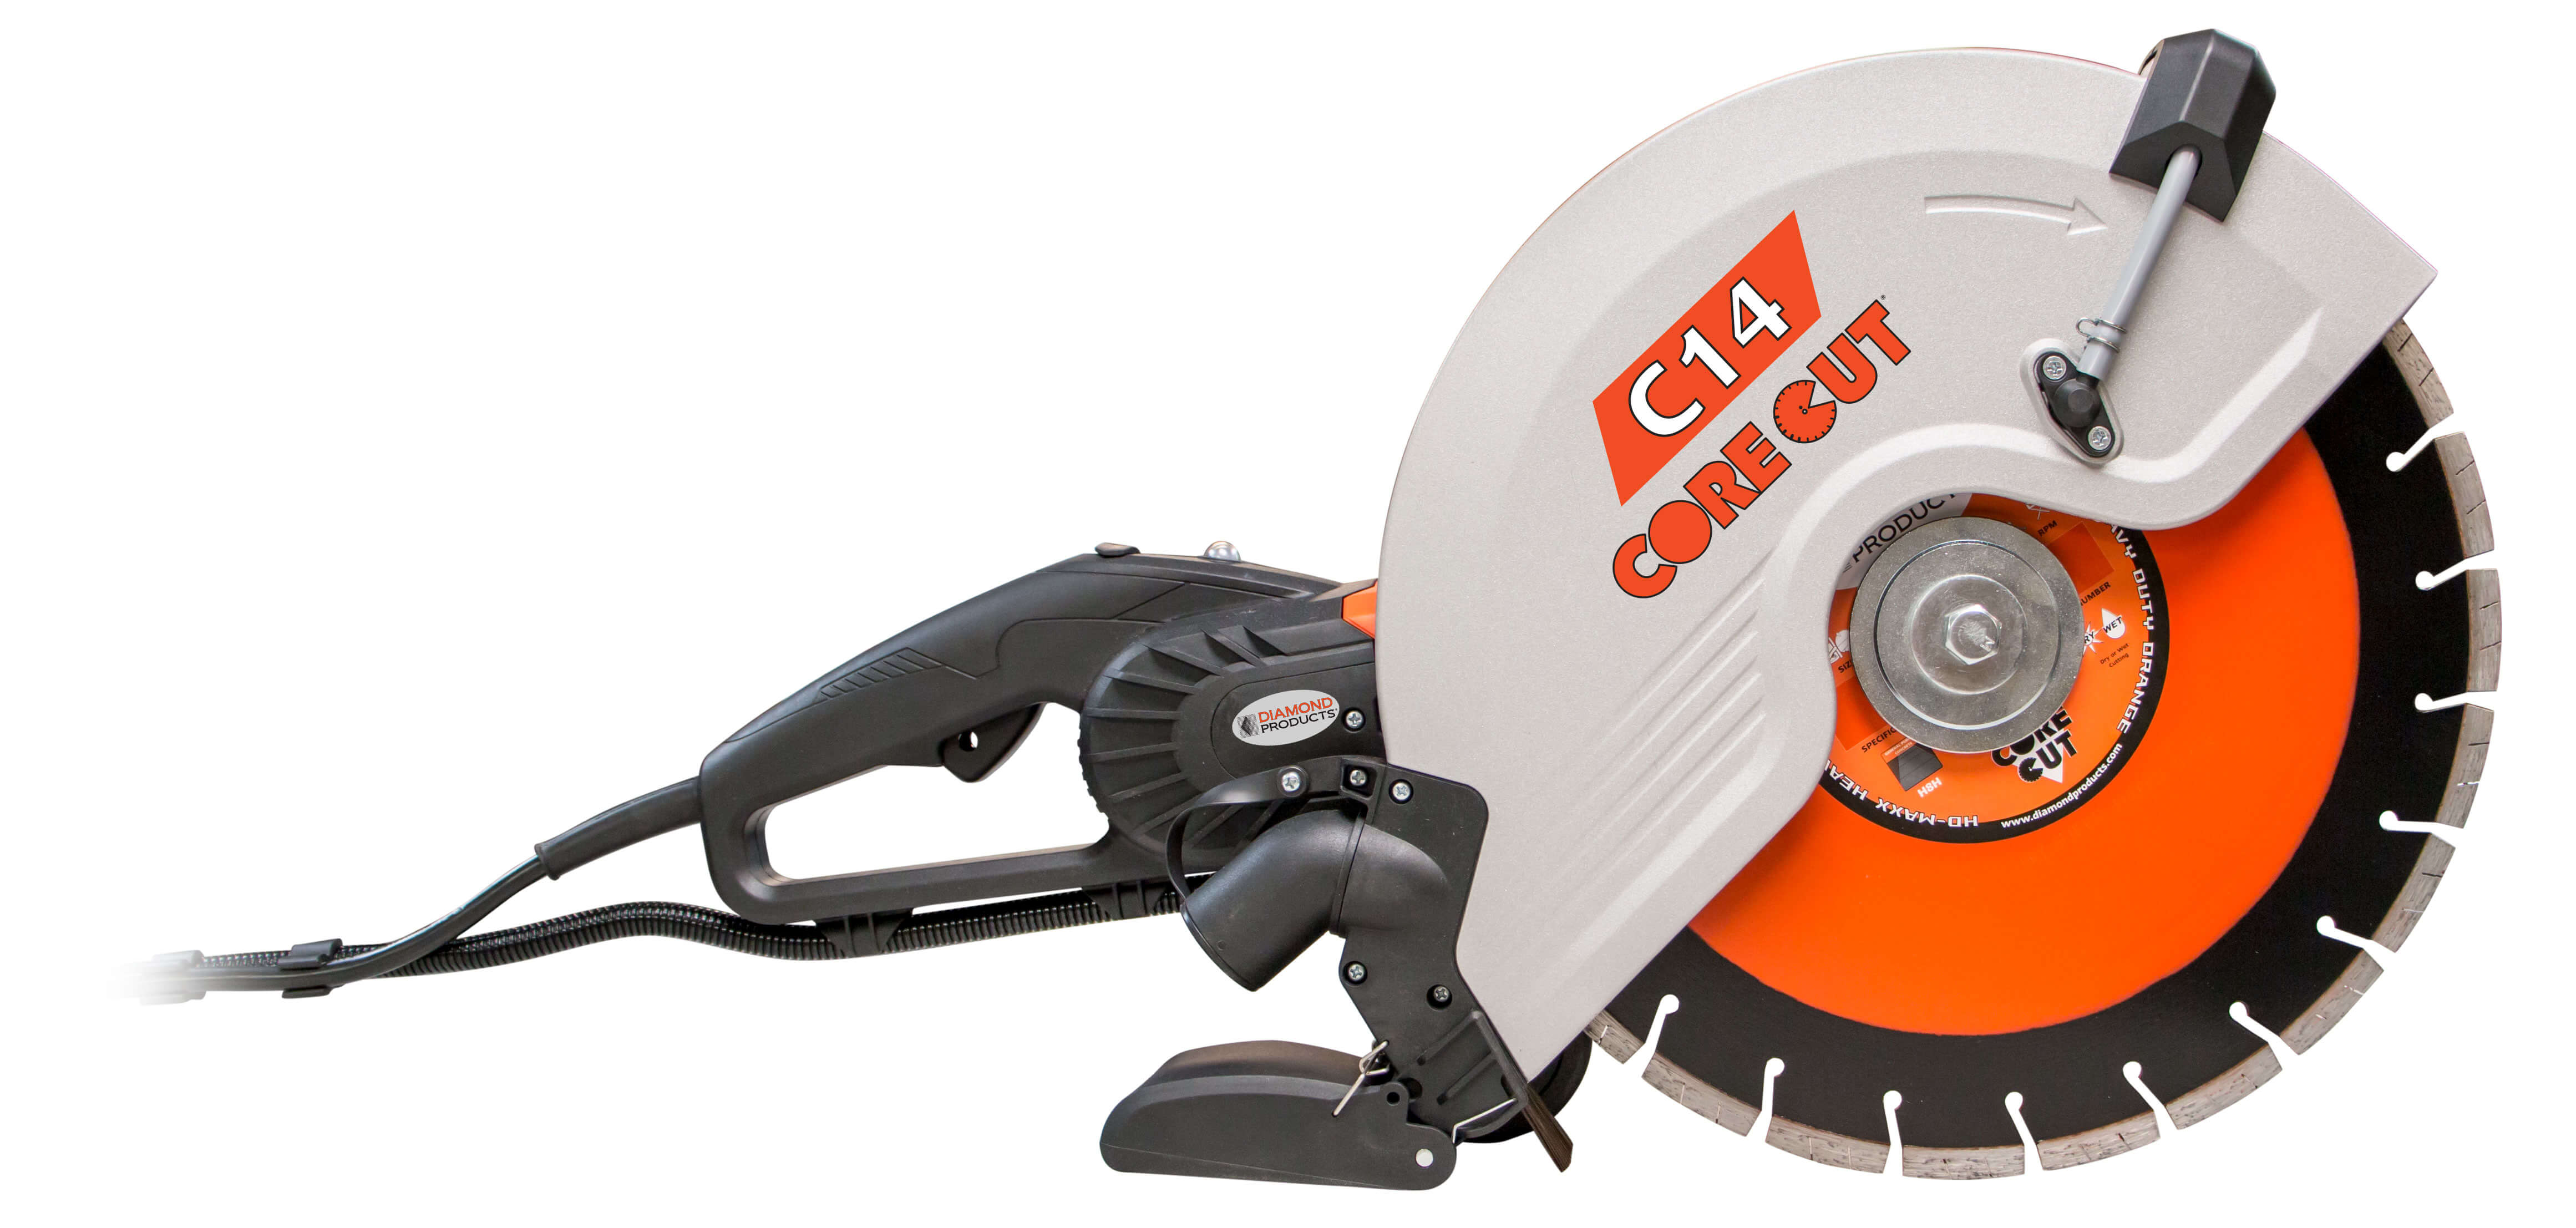 C14 Electric Saw